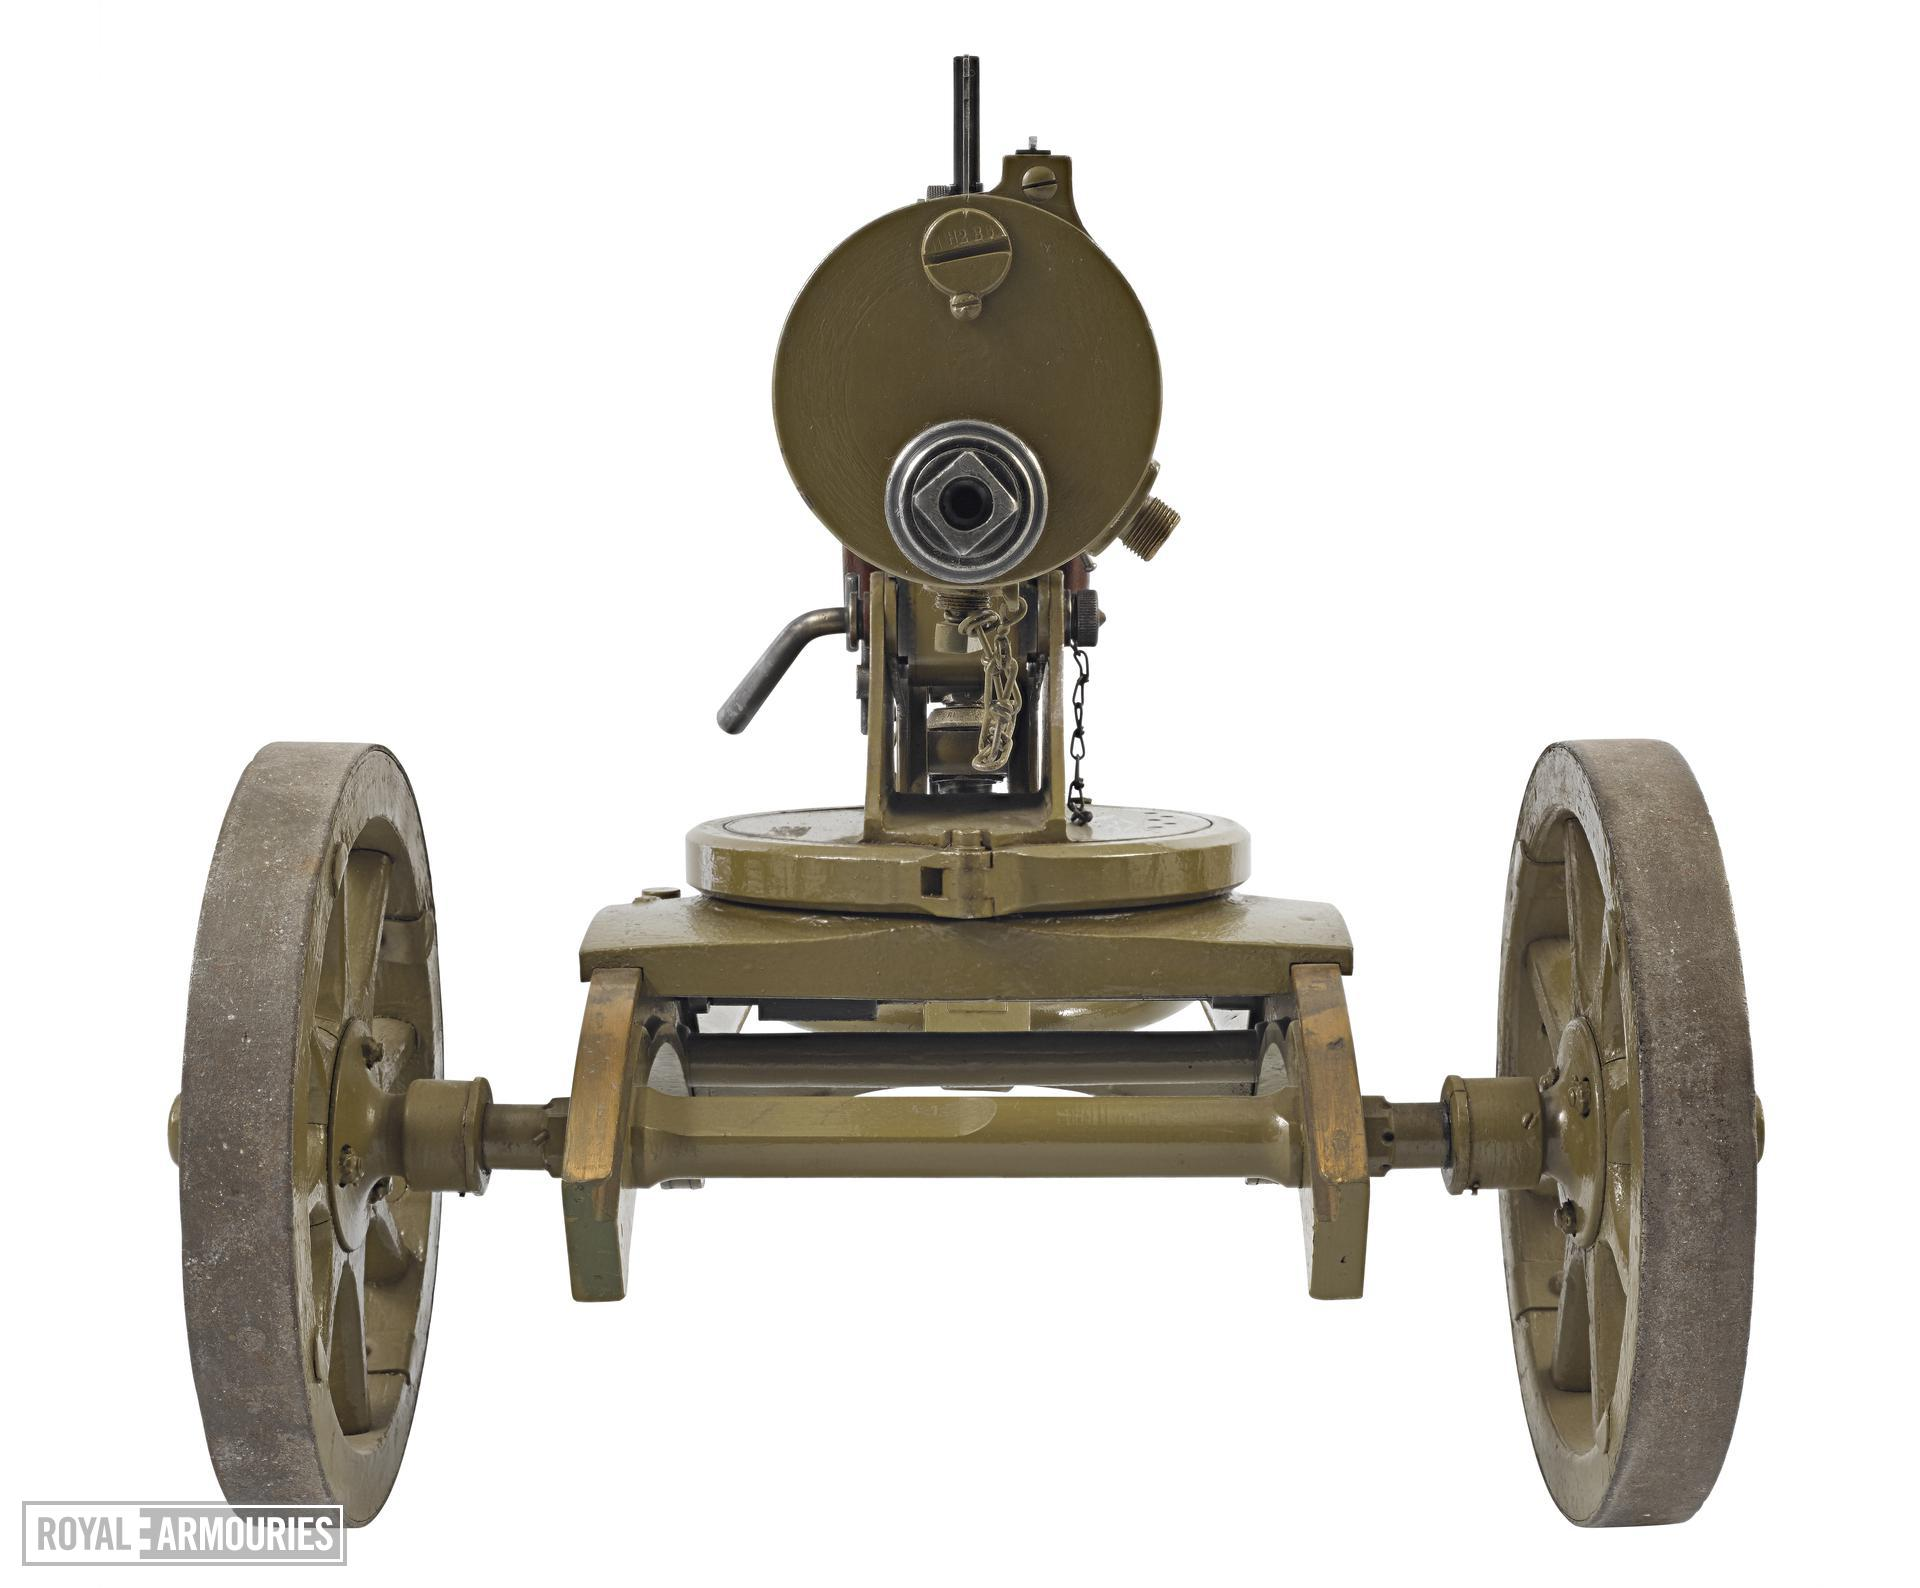 Maxim Model 1910 centrefire automatic machine gun, Russian, about 1910.  With wheeled mount (PR.129) for a Maxim Sokolv machine gun.